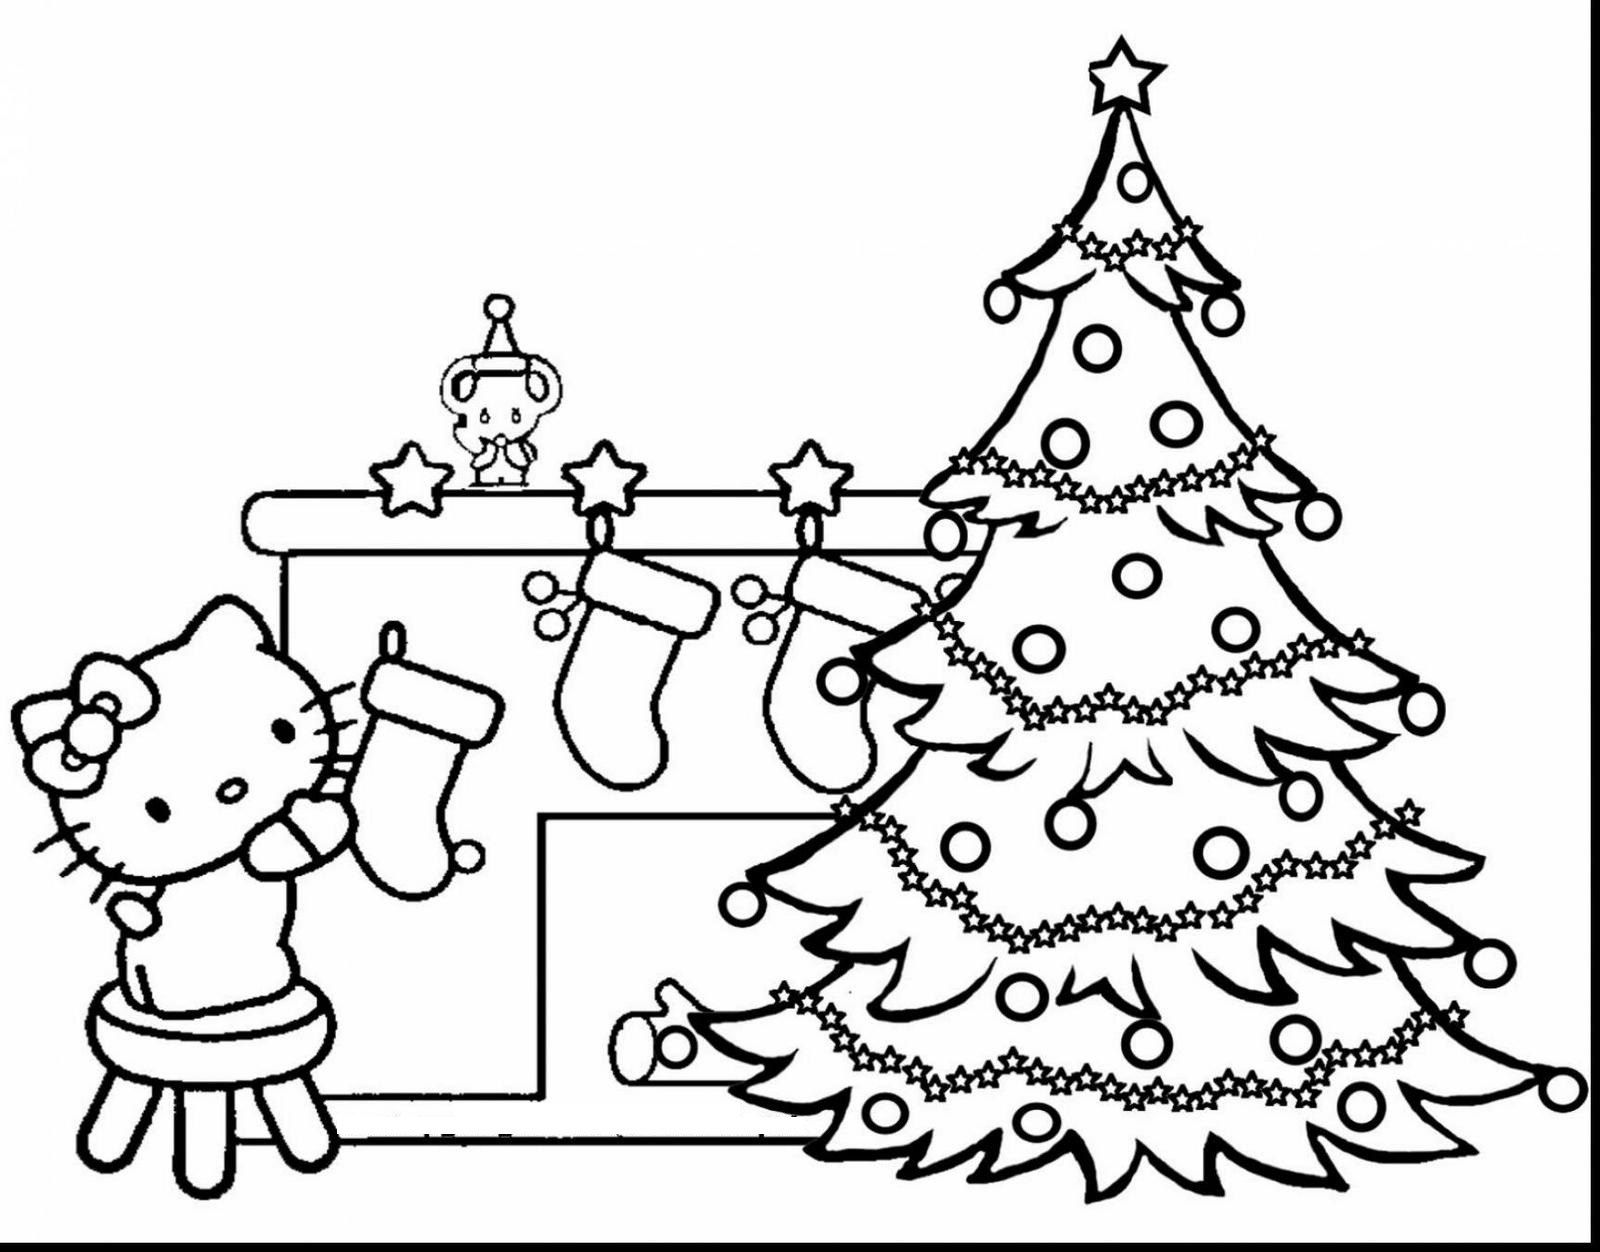 Christmas Tree Coloring and Sketch Drawing Pages